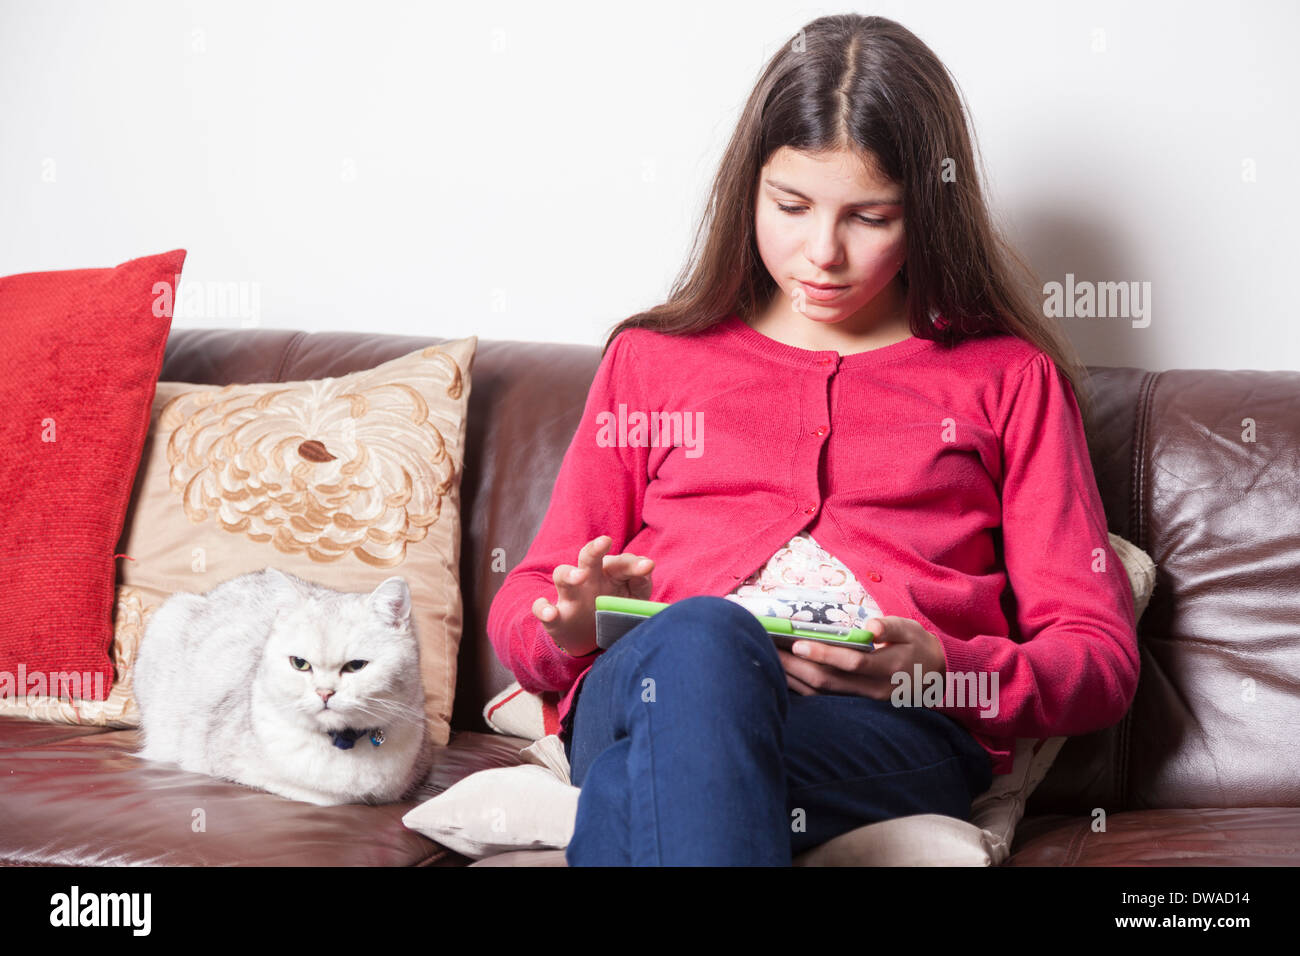 Teenage girl browsing the Internet on a tablet - Stock Image